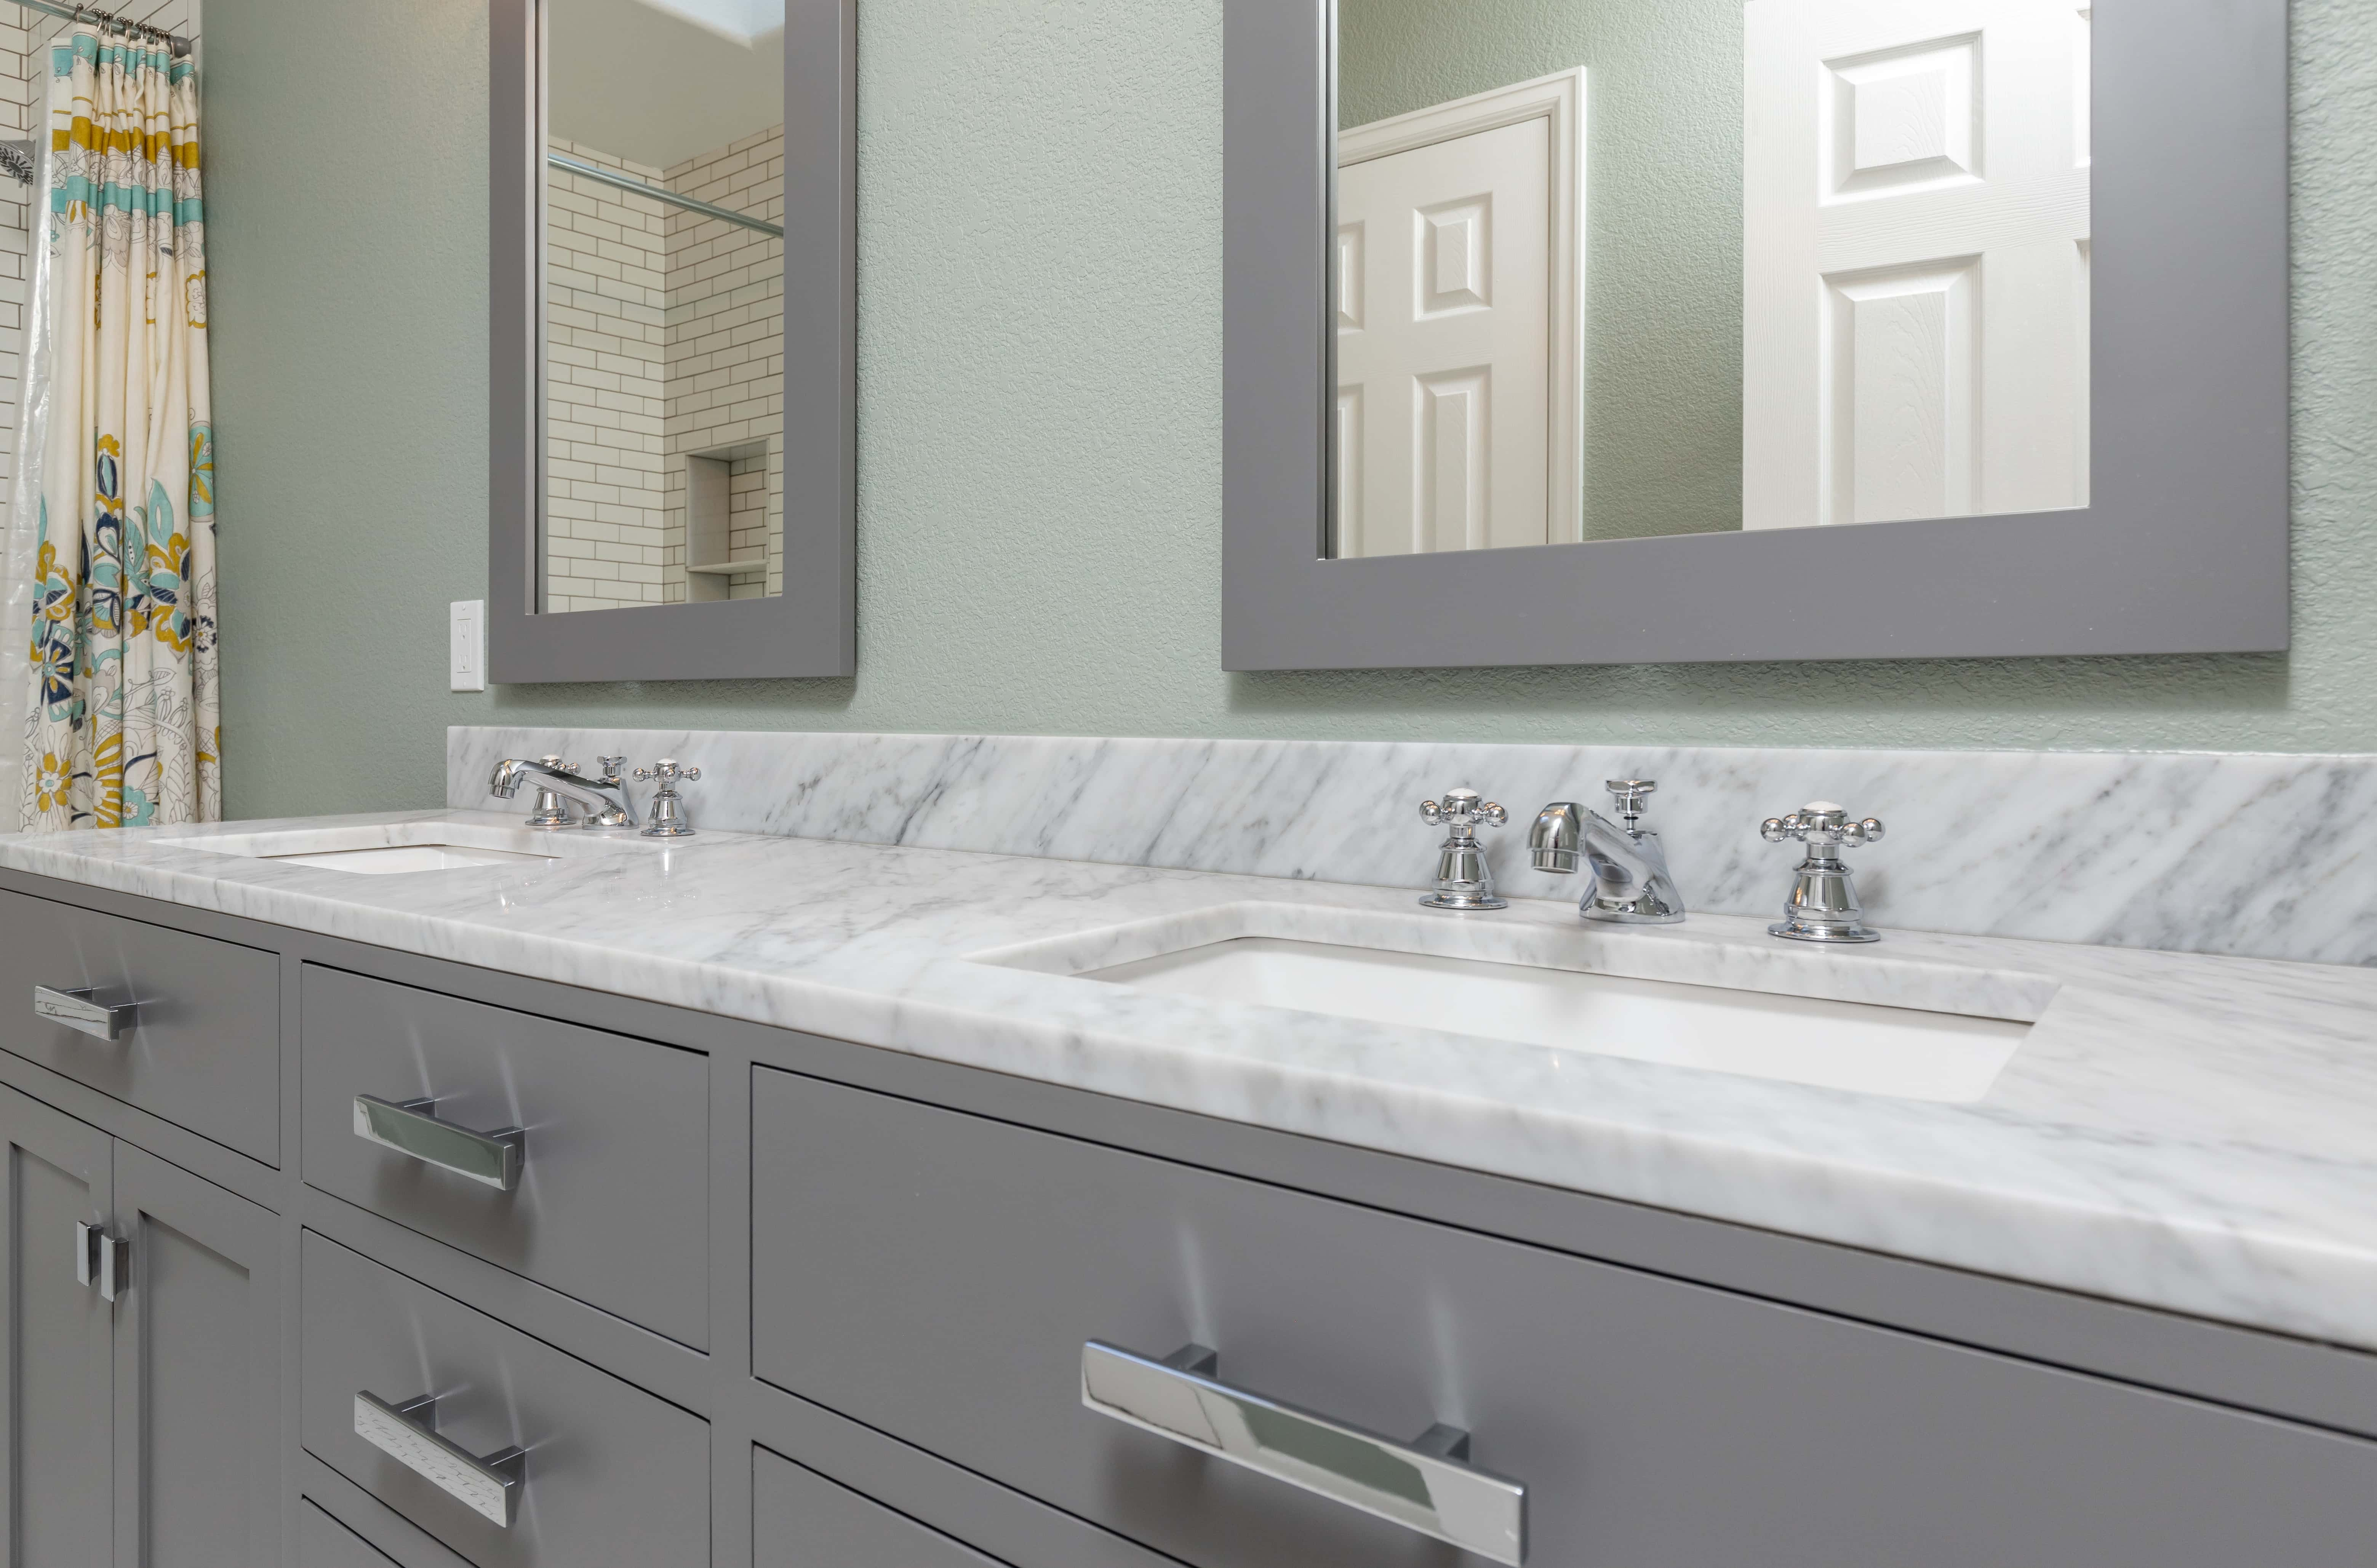 Golden Colorado Bathroom Remodel Pro Com